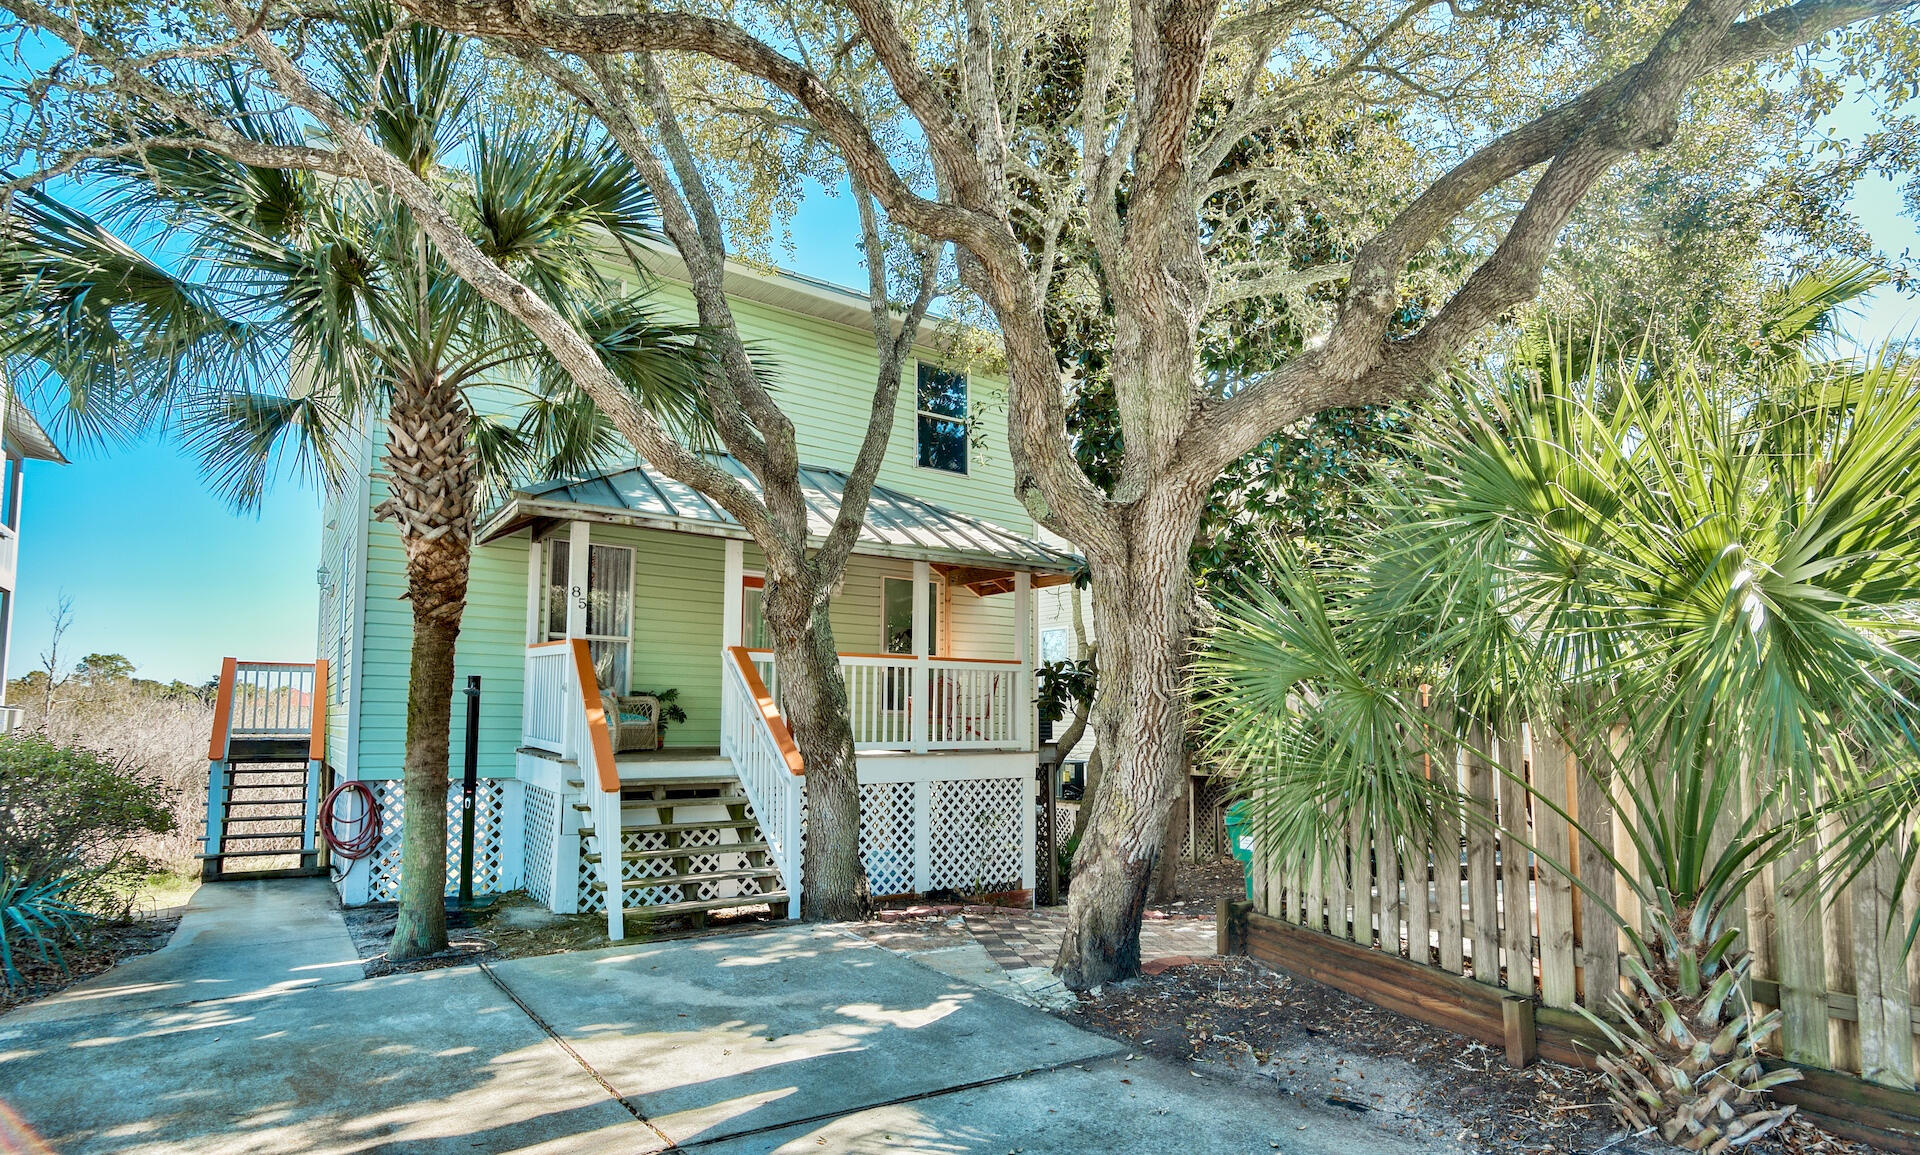 You will not want to miss your chance to own a beautiful Destin beach home, located in the highly de